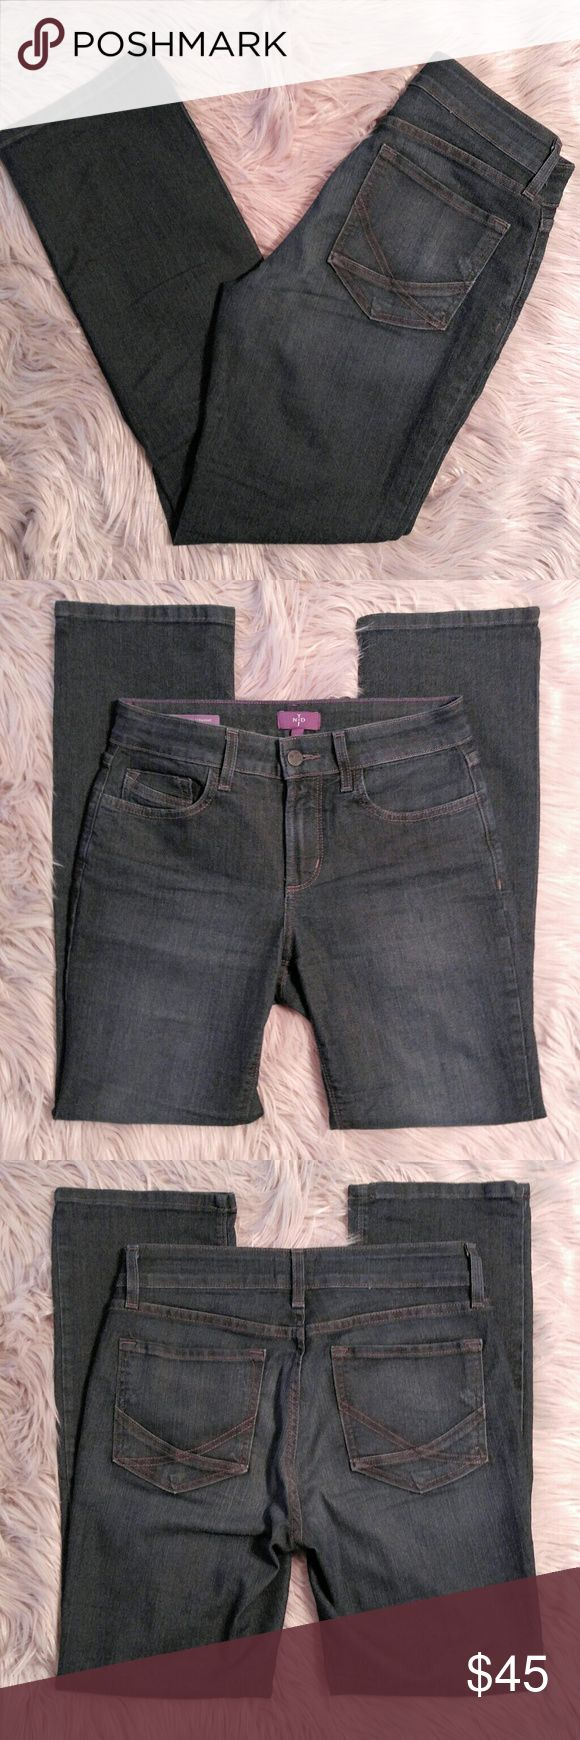 """NYDJ Dark Wash Marilyn Straight Cut Jeans NYDJ Dark Wash Marilyn Straight Cut Jeans Size 4P with a 14"""" waist and 28"""" inseam. These are in EUC and curve hugging. NYDJ Jeans Straight Leg"""